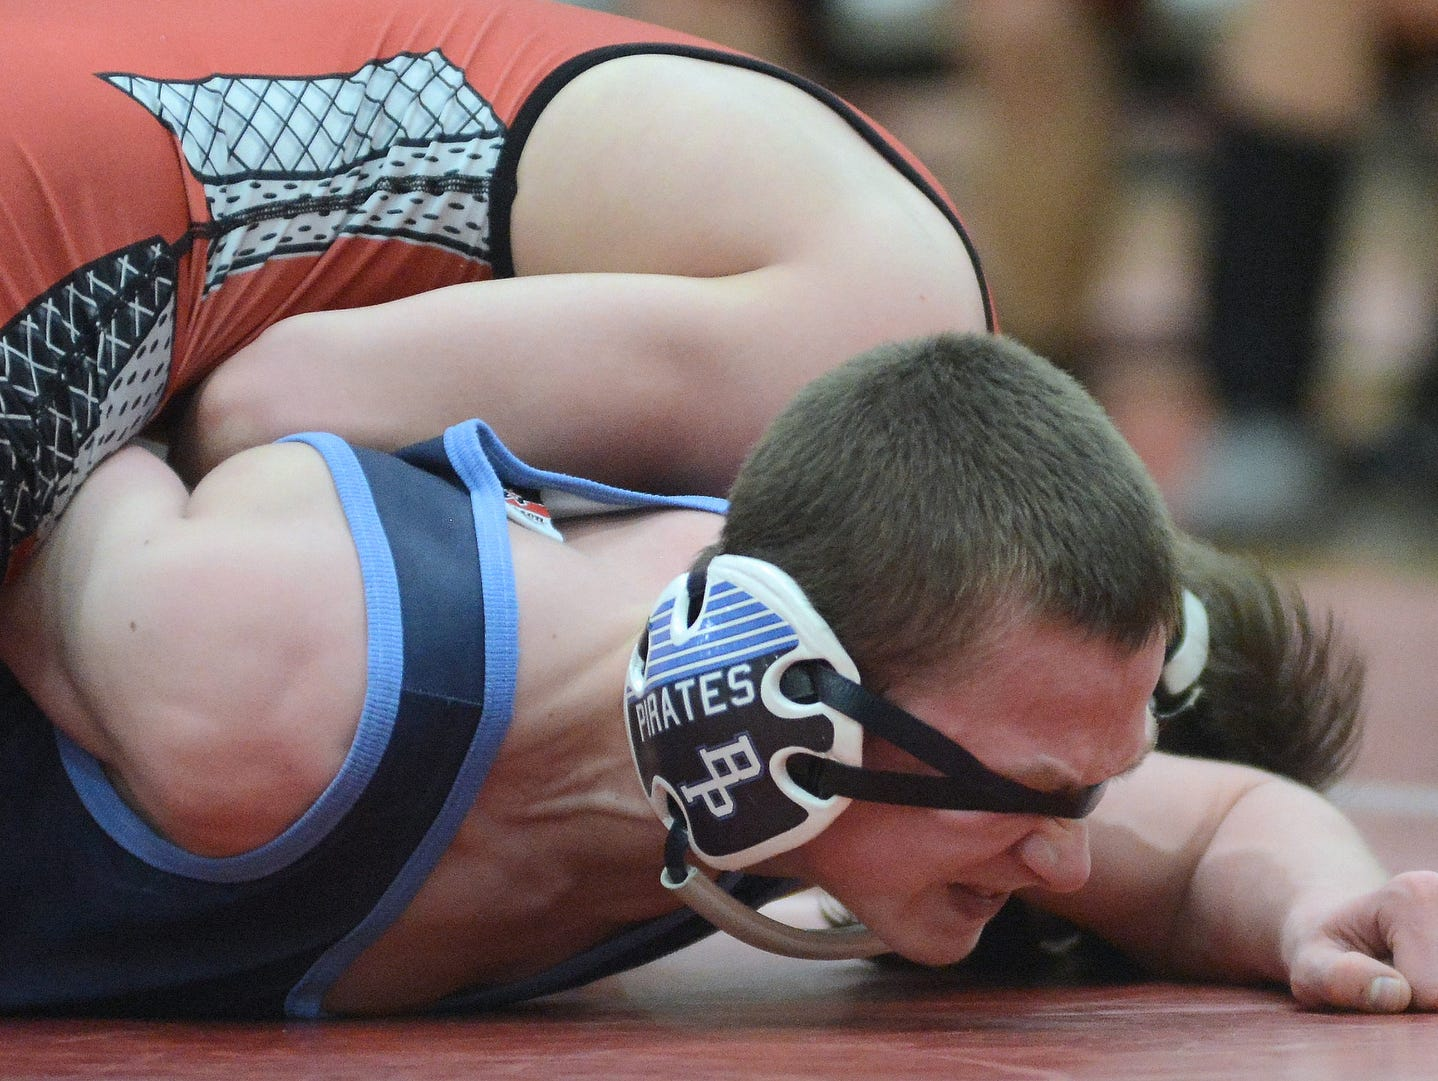 Wisconsin Rapids Lincoln's Matrix Jisko controls Bay Port's Jarod Maes, who is blinded by his out-of-position headgear in their 113-pound match during a WIAA Team Sectional at Pulaski High School in Pulaski, Wis. on Tuesday, Feb. 17, 2015.